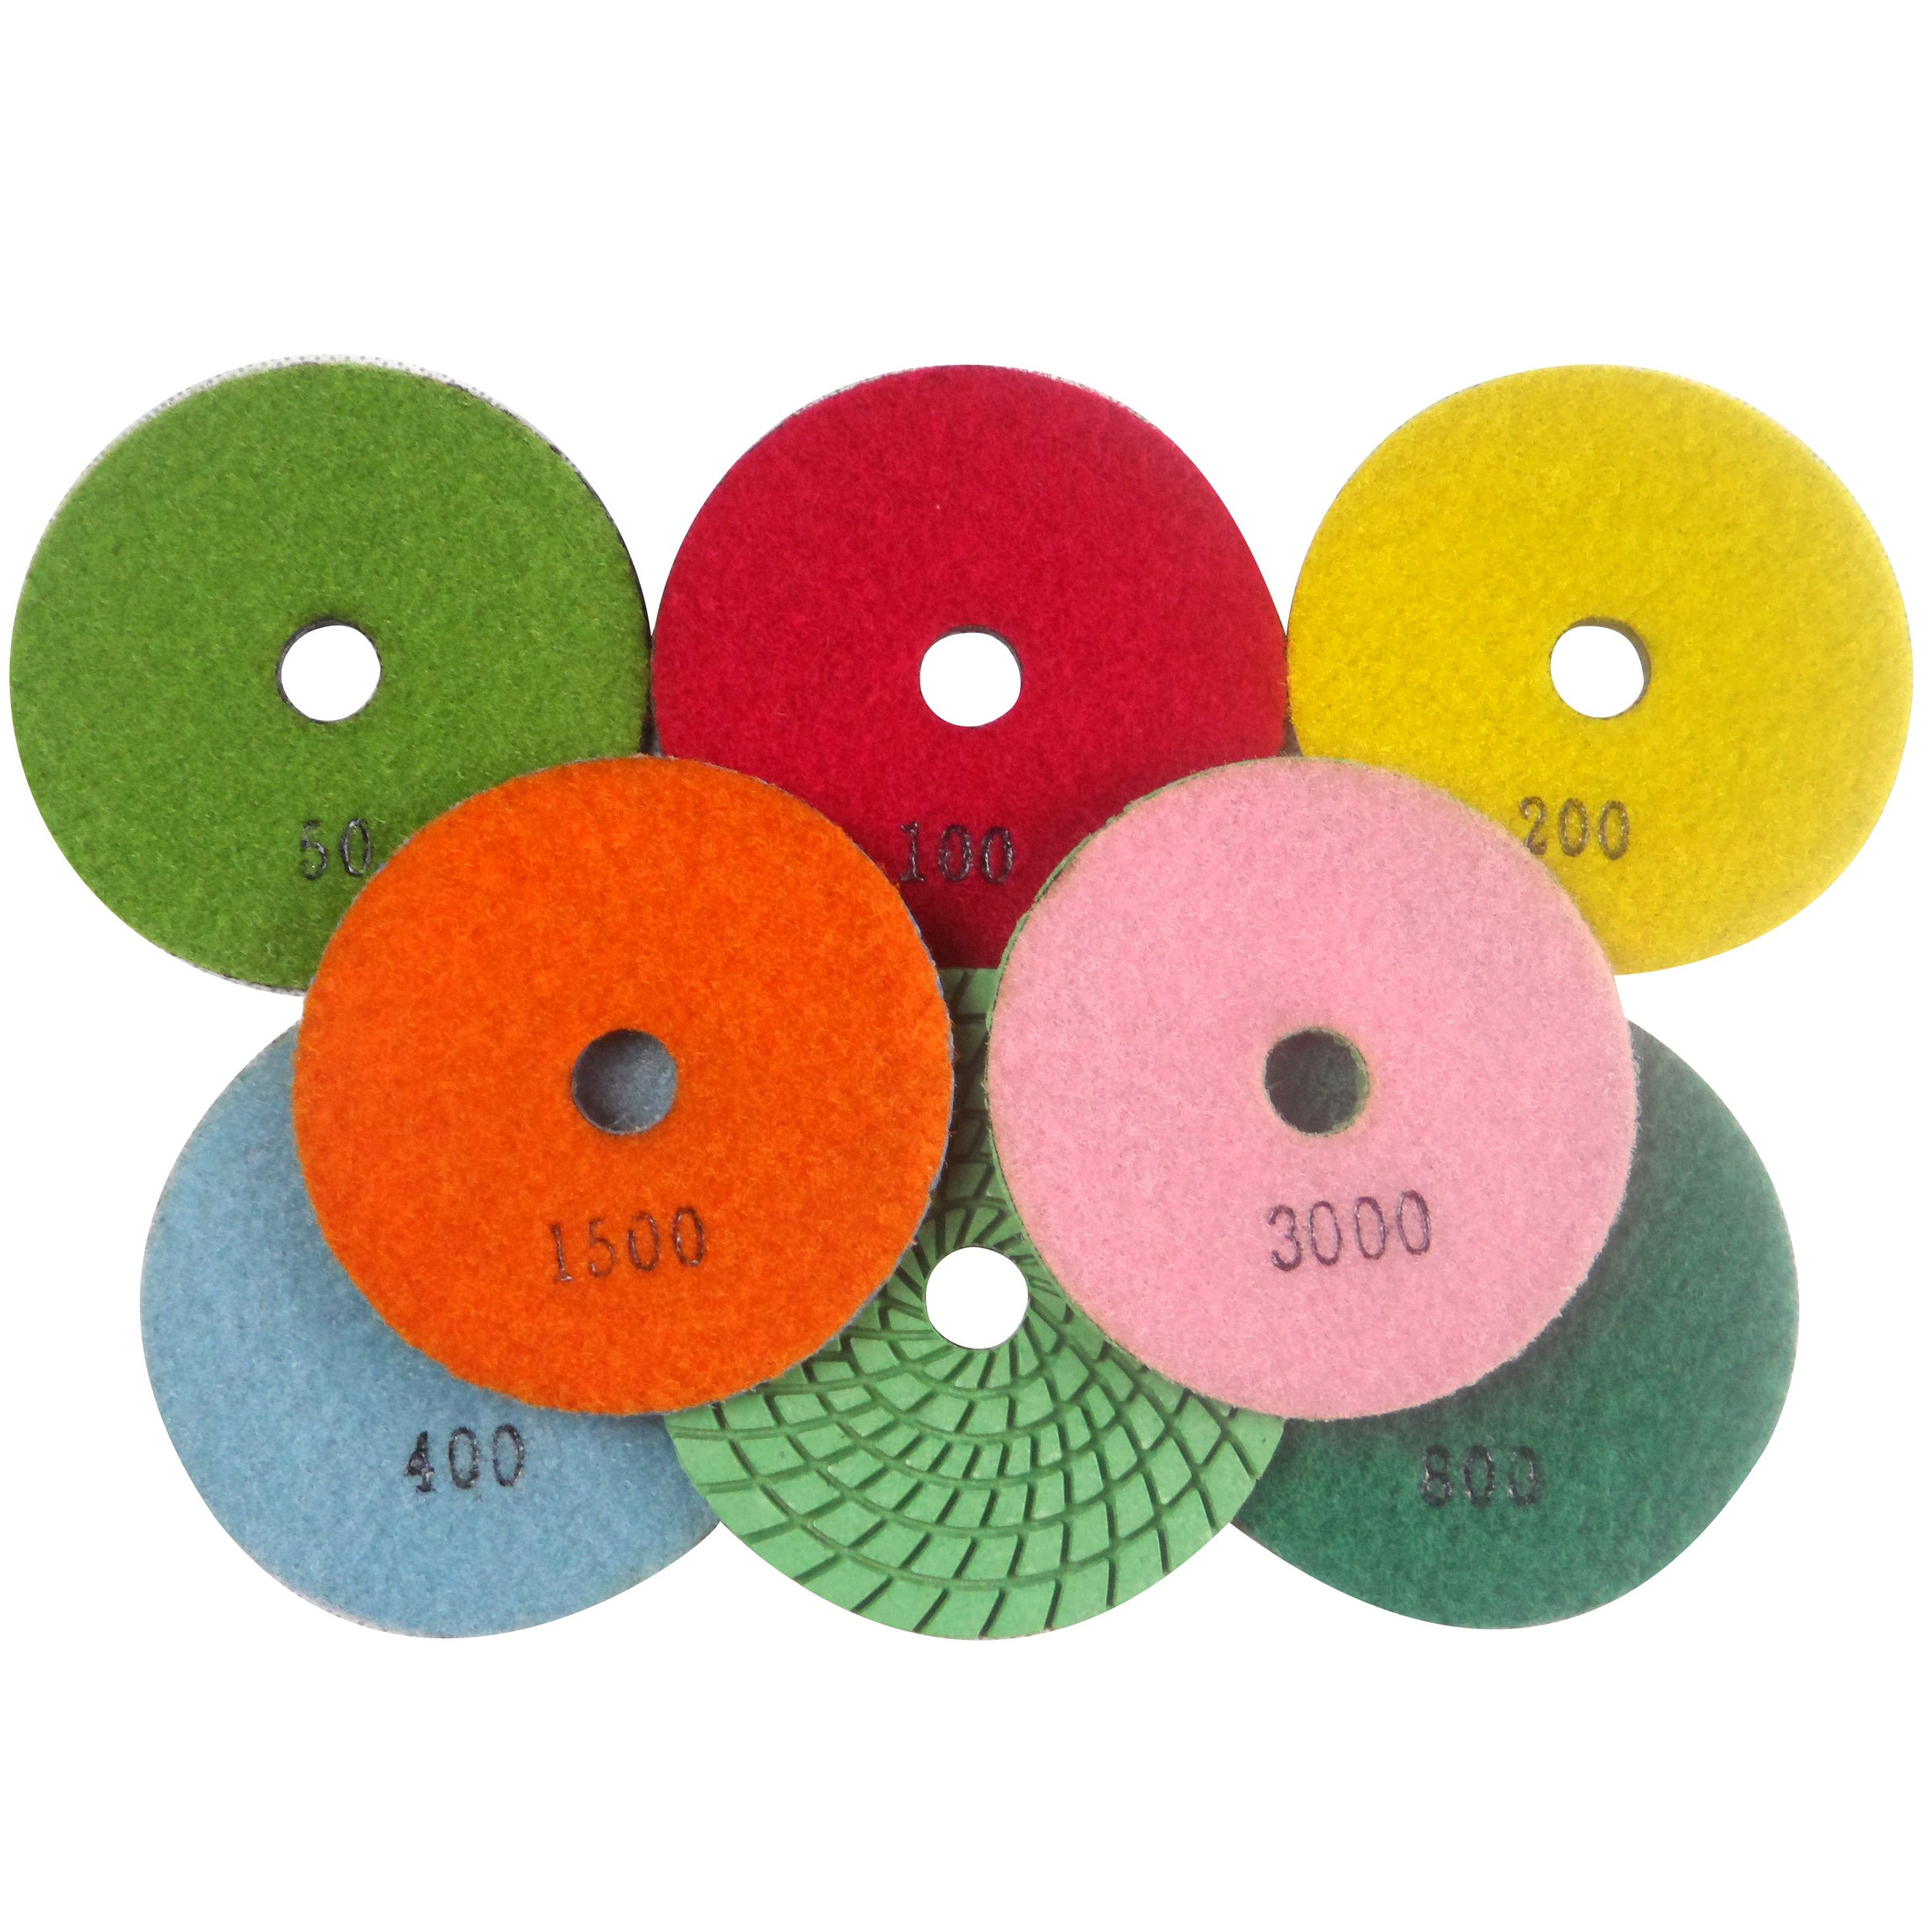 Konfor 4'' Wet/Dry Diamond Polishing Pads for Grinding Granite Marble Concrete Stone Pack of 7 by Konfor